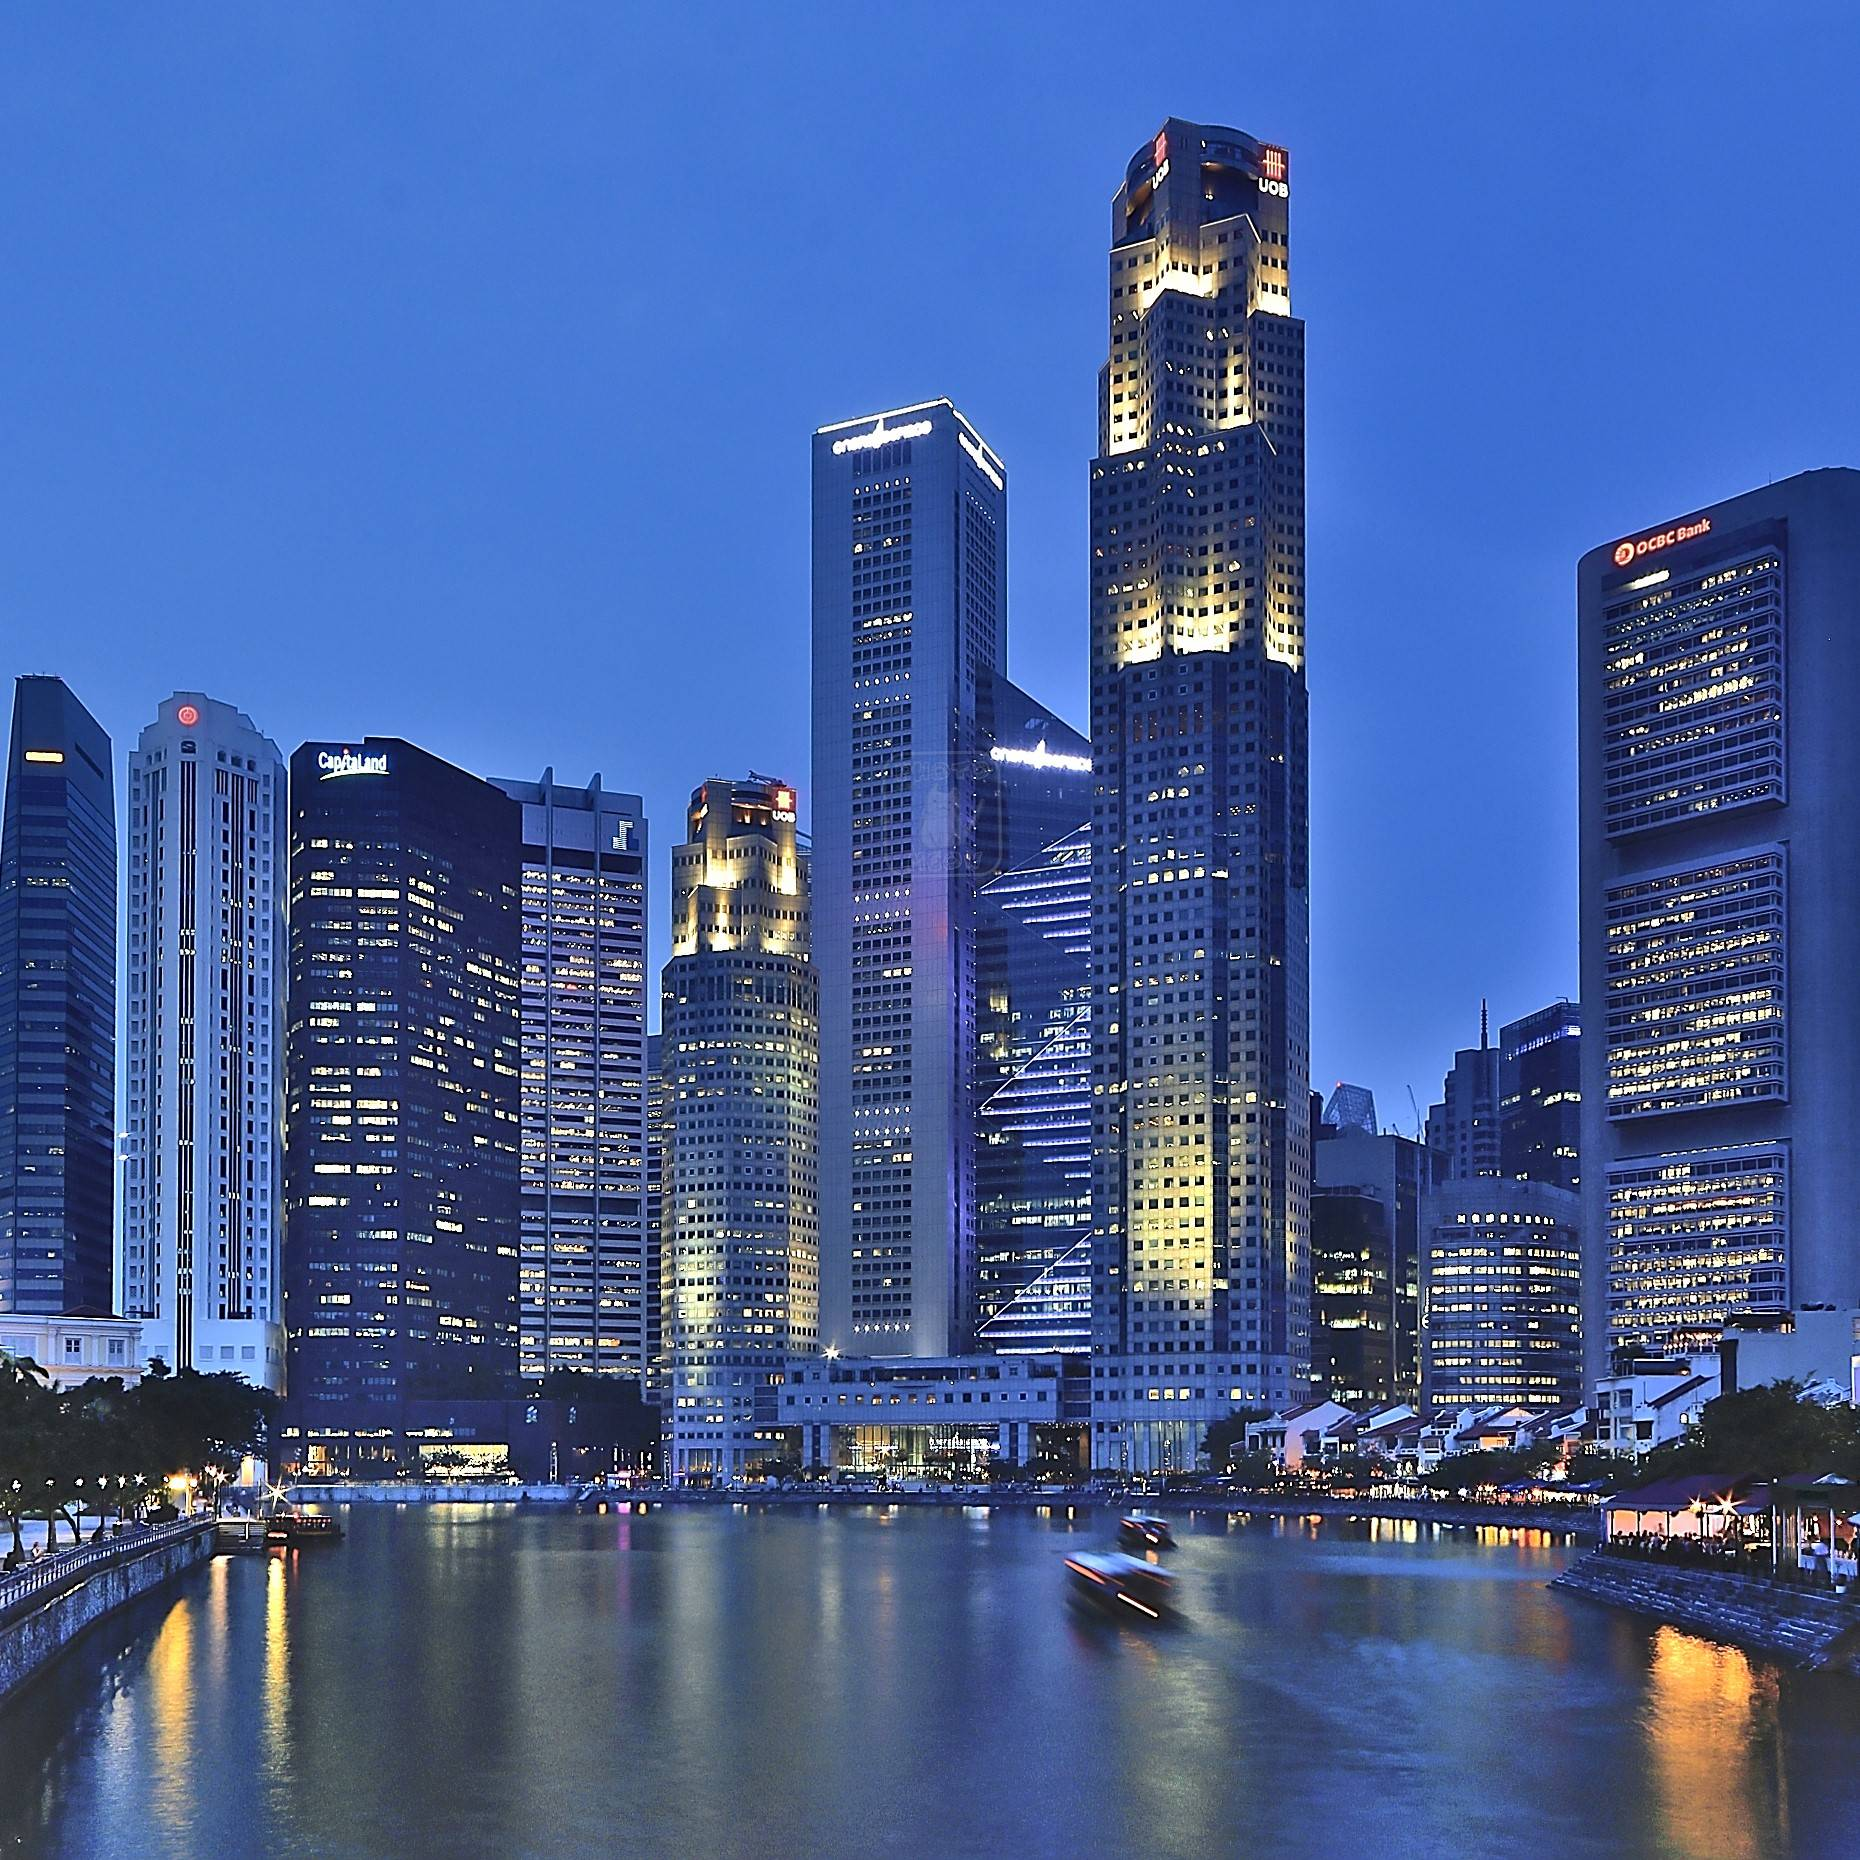 Singapore, London, New York, Paris and Tokyo leading the charge of smart cities